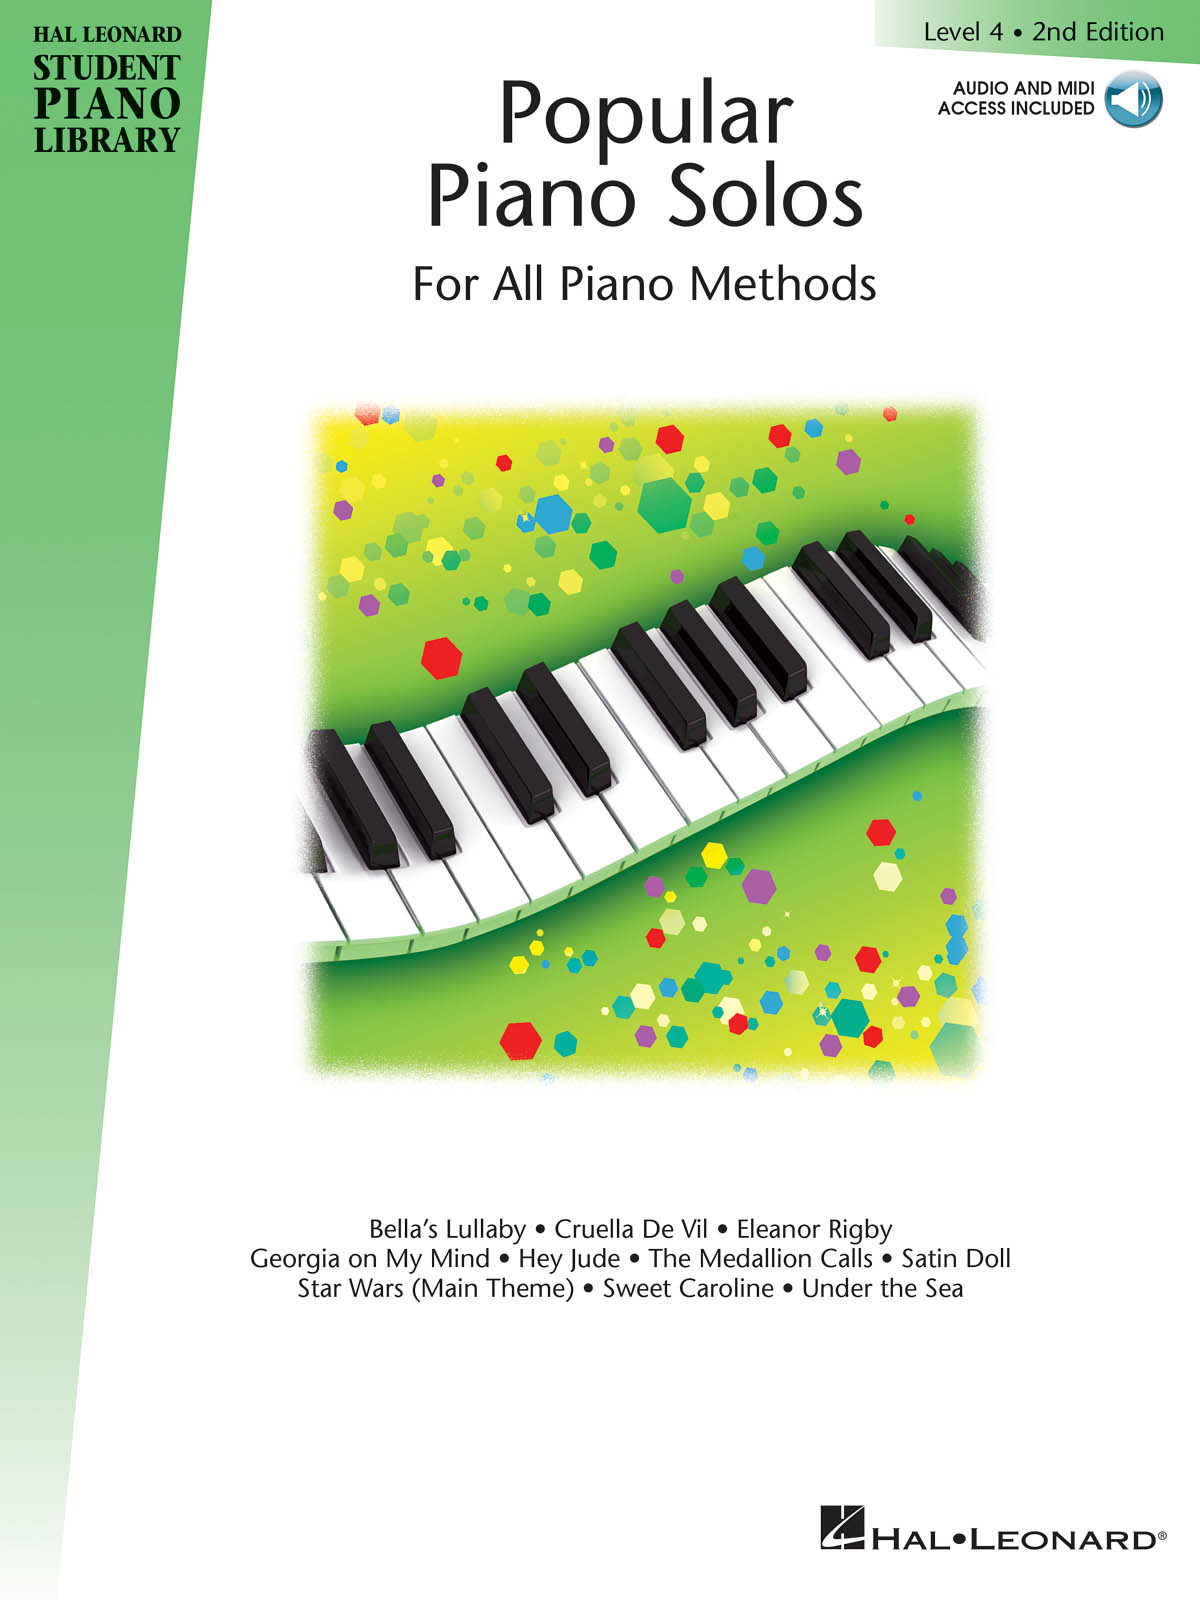 Popular Piano Solos 2nd Edition -Level 4: Piano: Instrumental Album